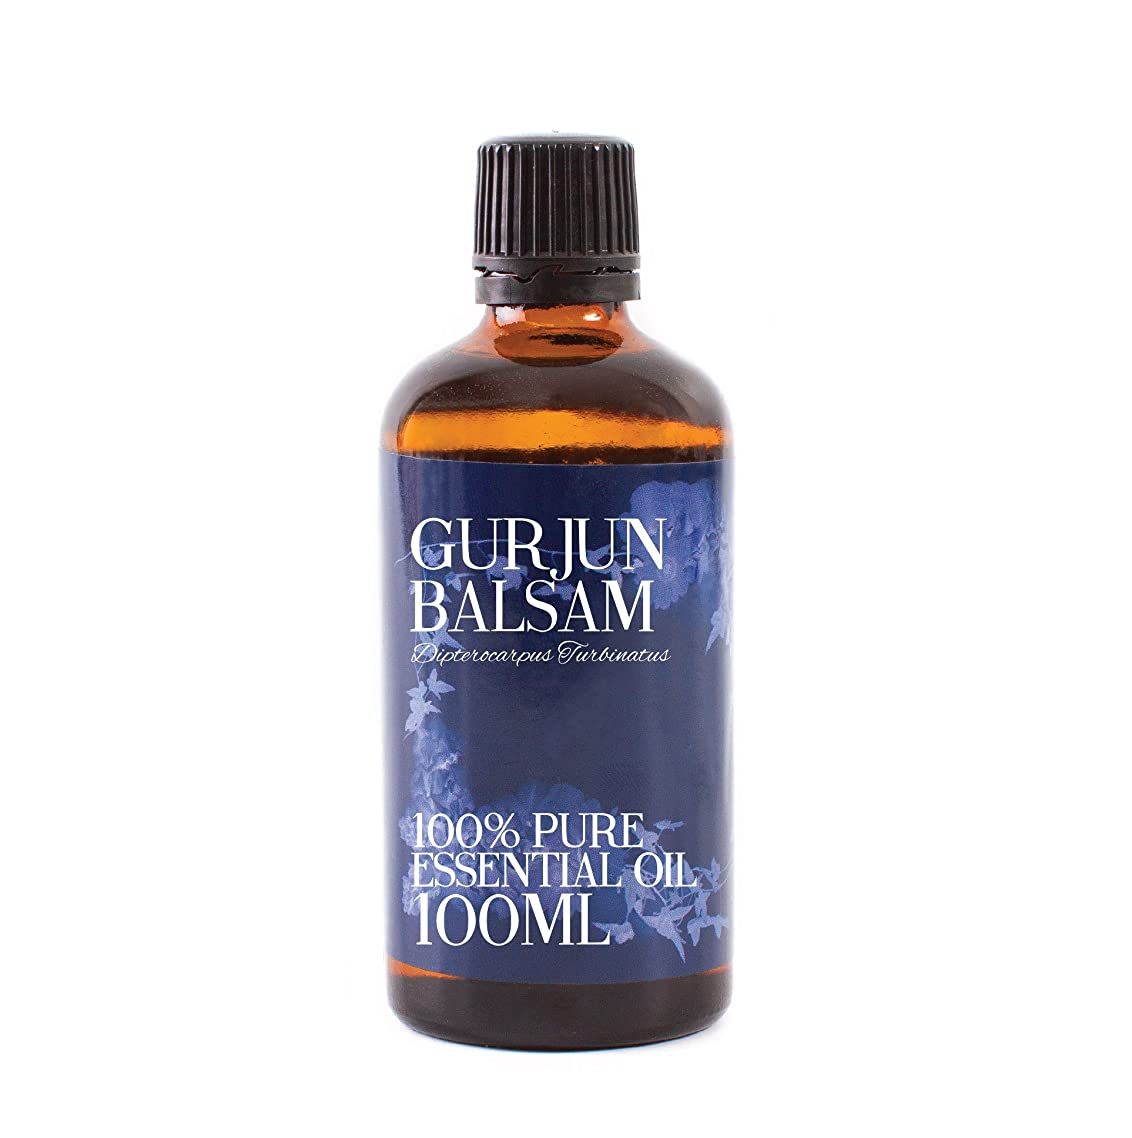 腫瘍熟練した有害なMystic Moments | Gurjun Balsam Essential Oil - 100ml - 100% Pure